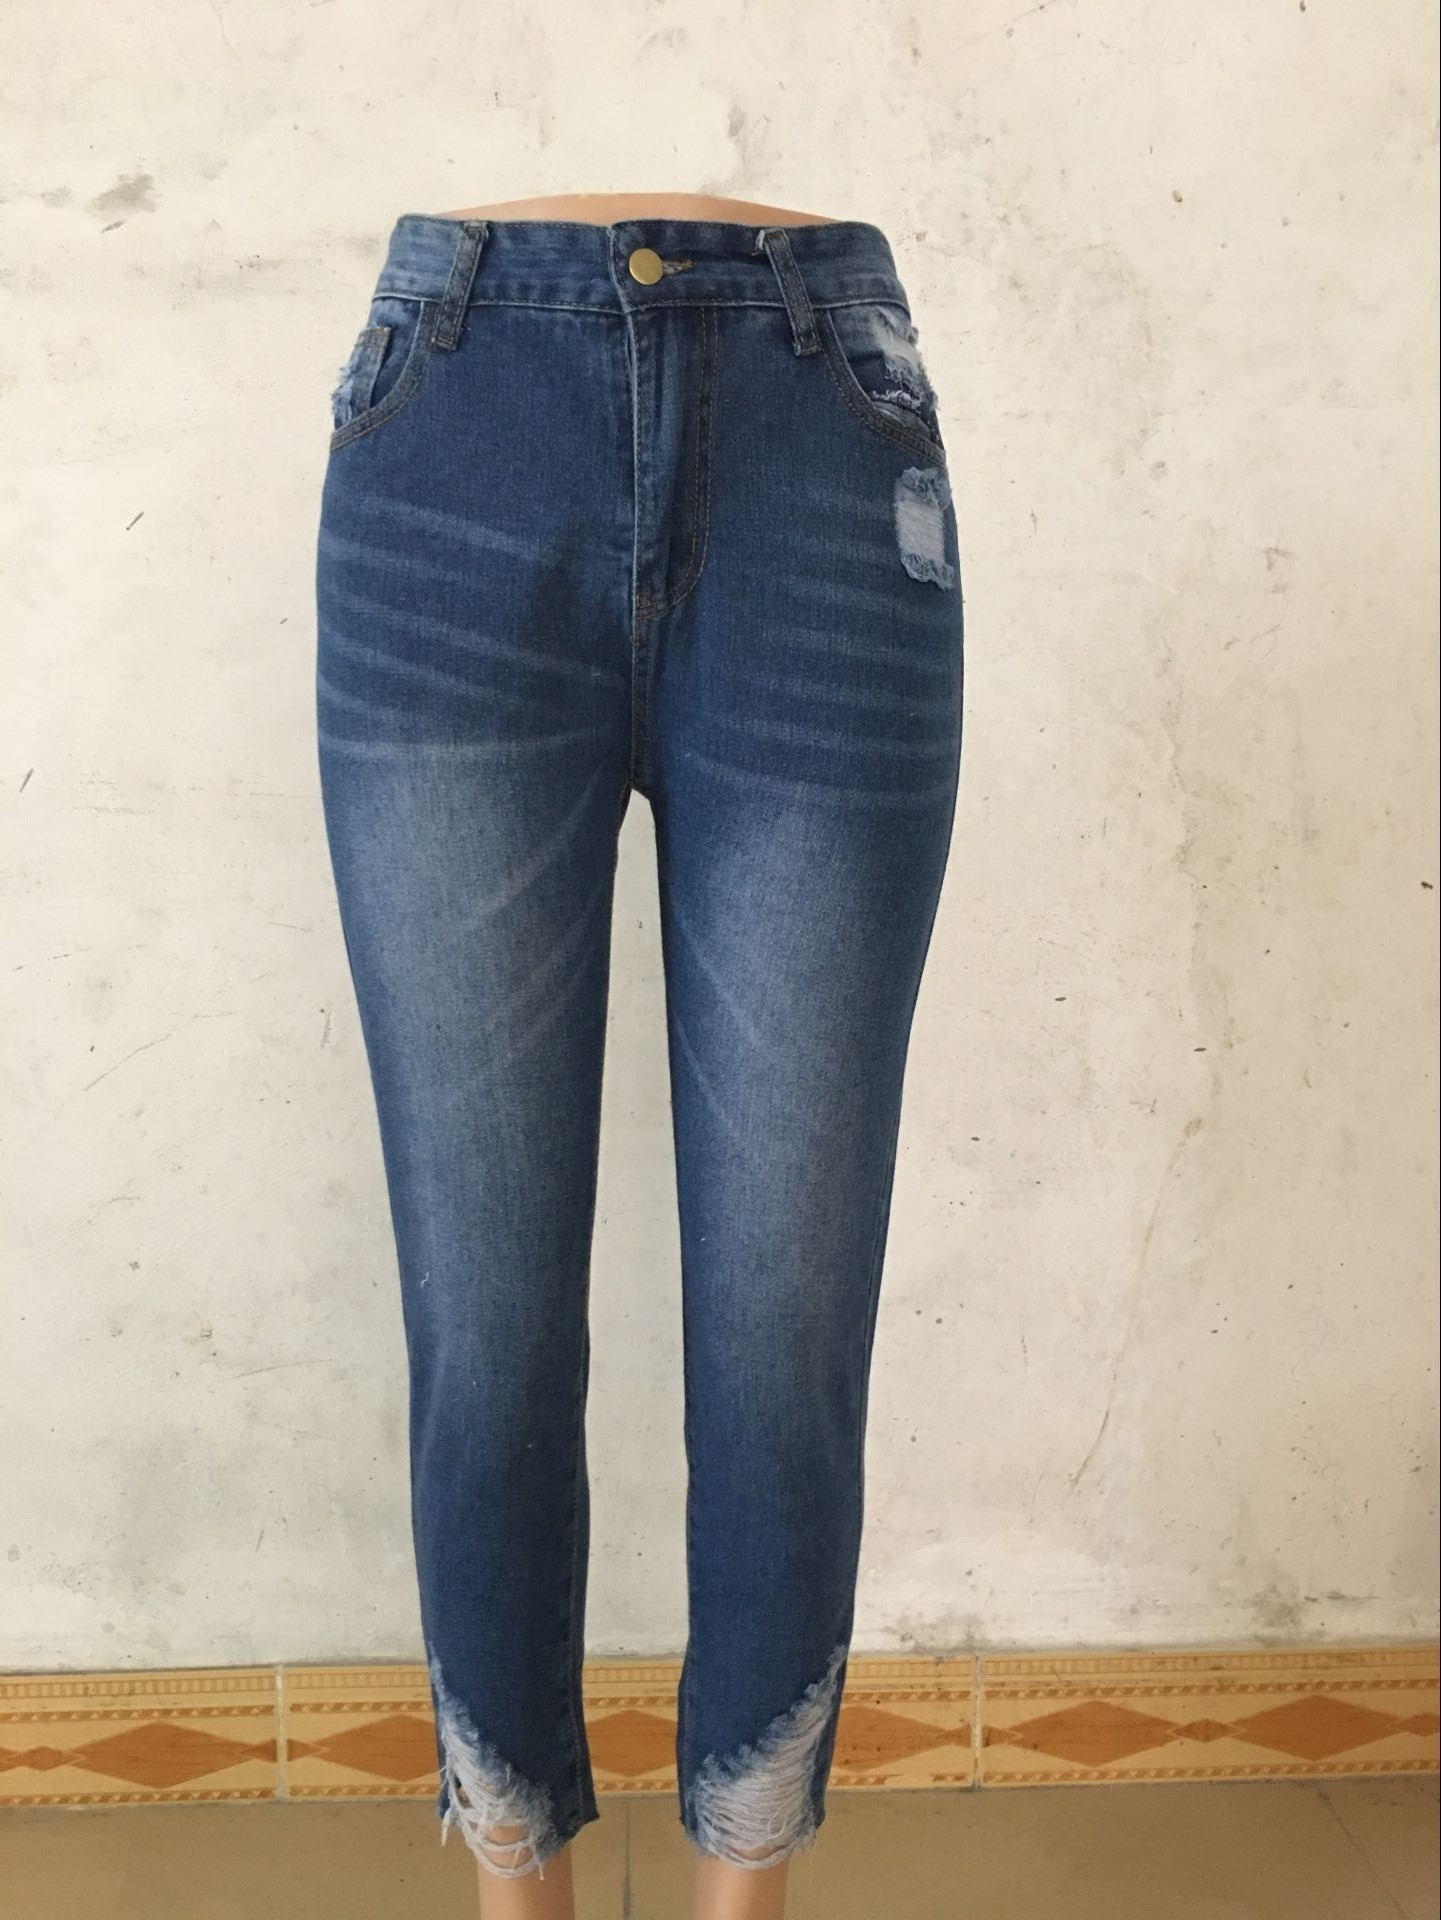 New Ripped Tassel Jeans For Women Ankle-Length High Waisted Jeansy Blue Casual Pencil Jeans Korean Streetwear Denim Pants Femme